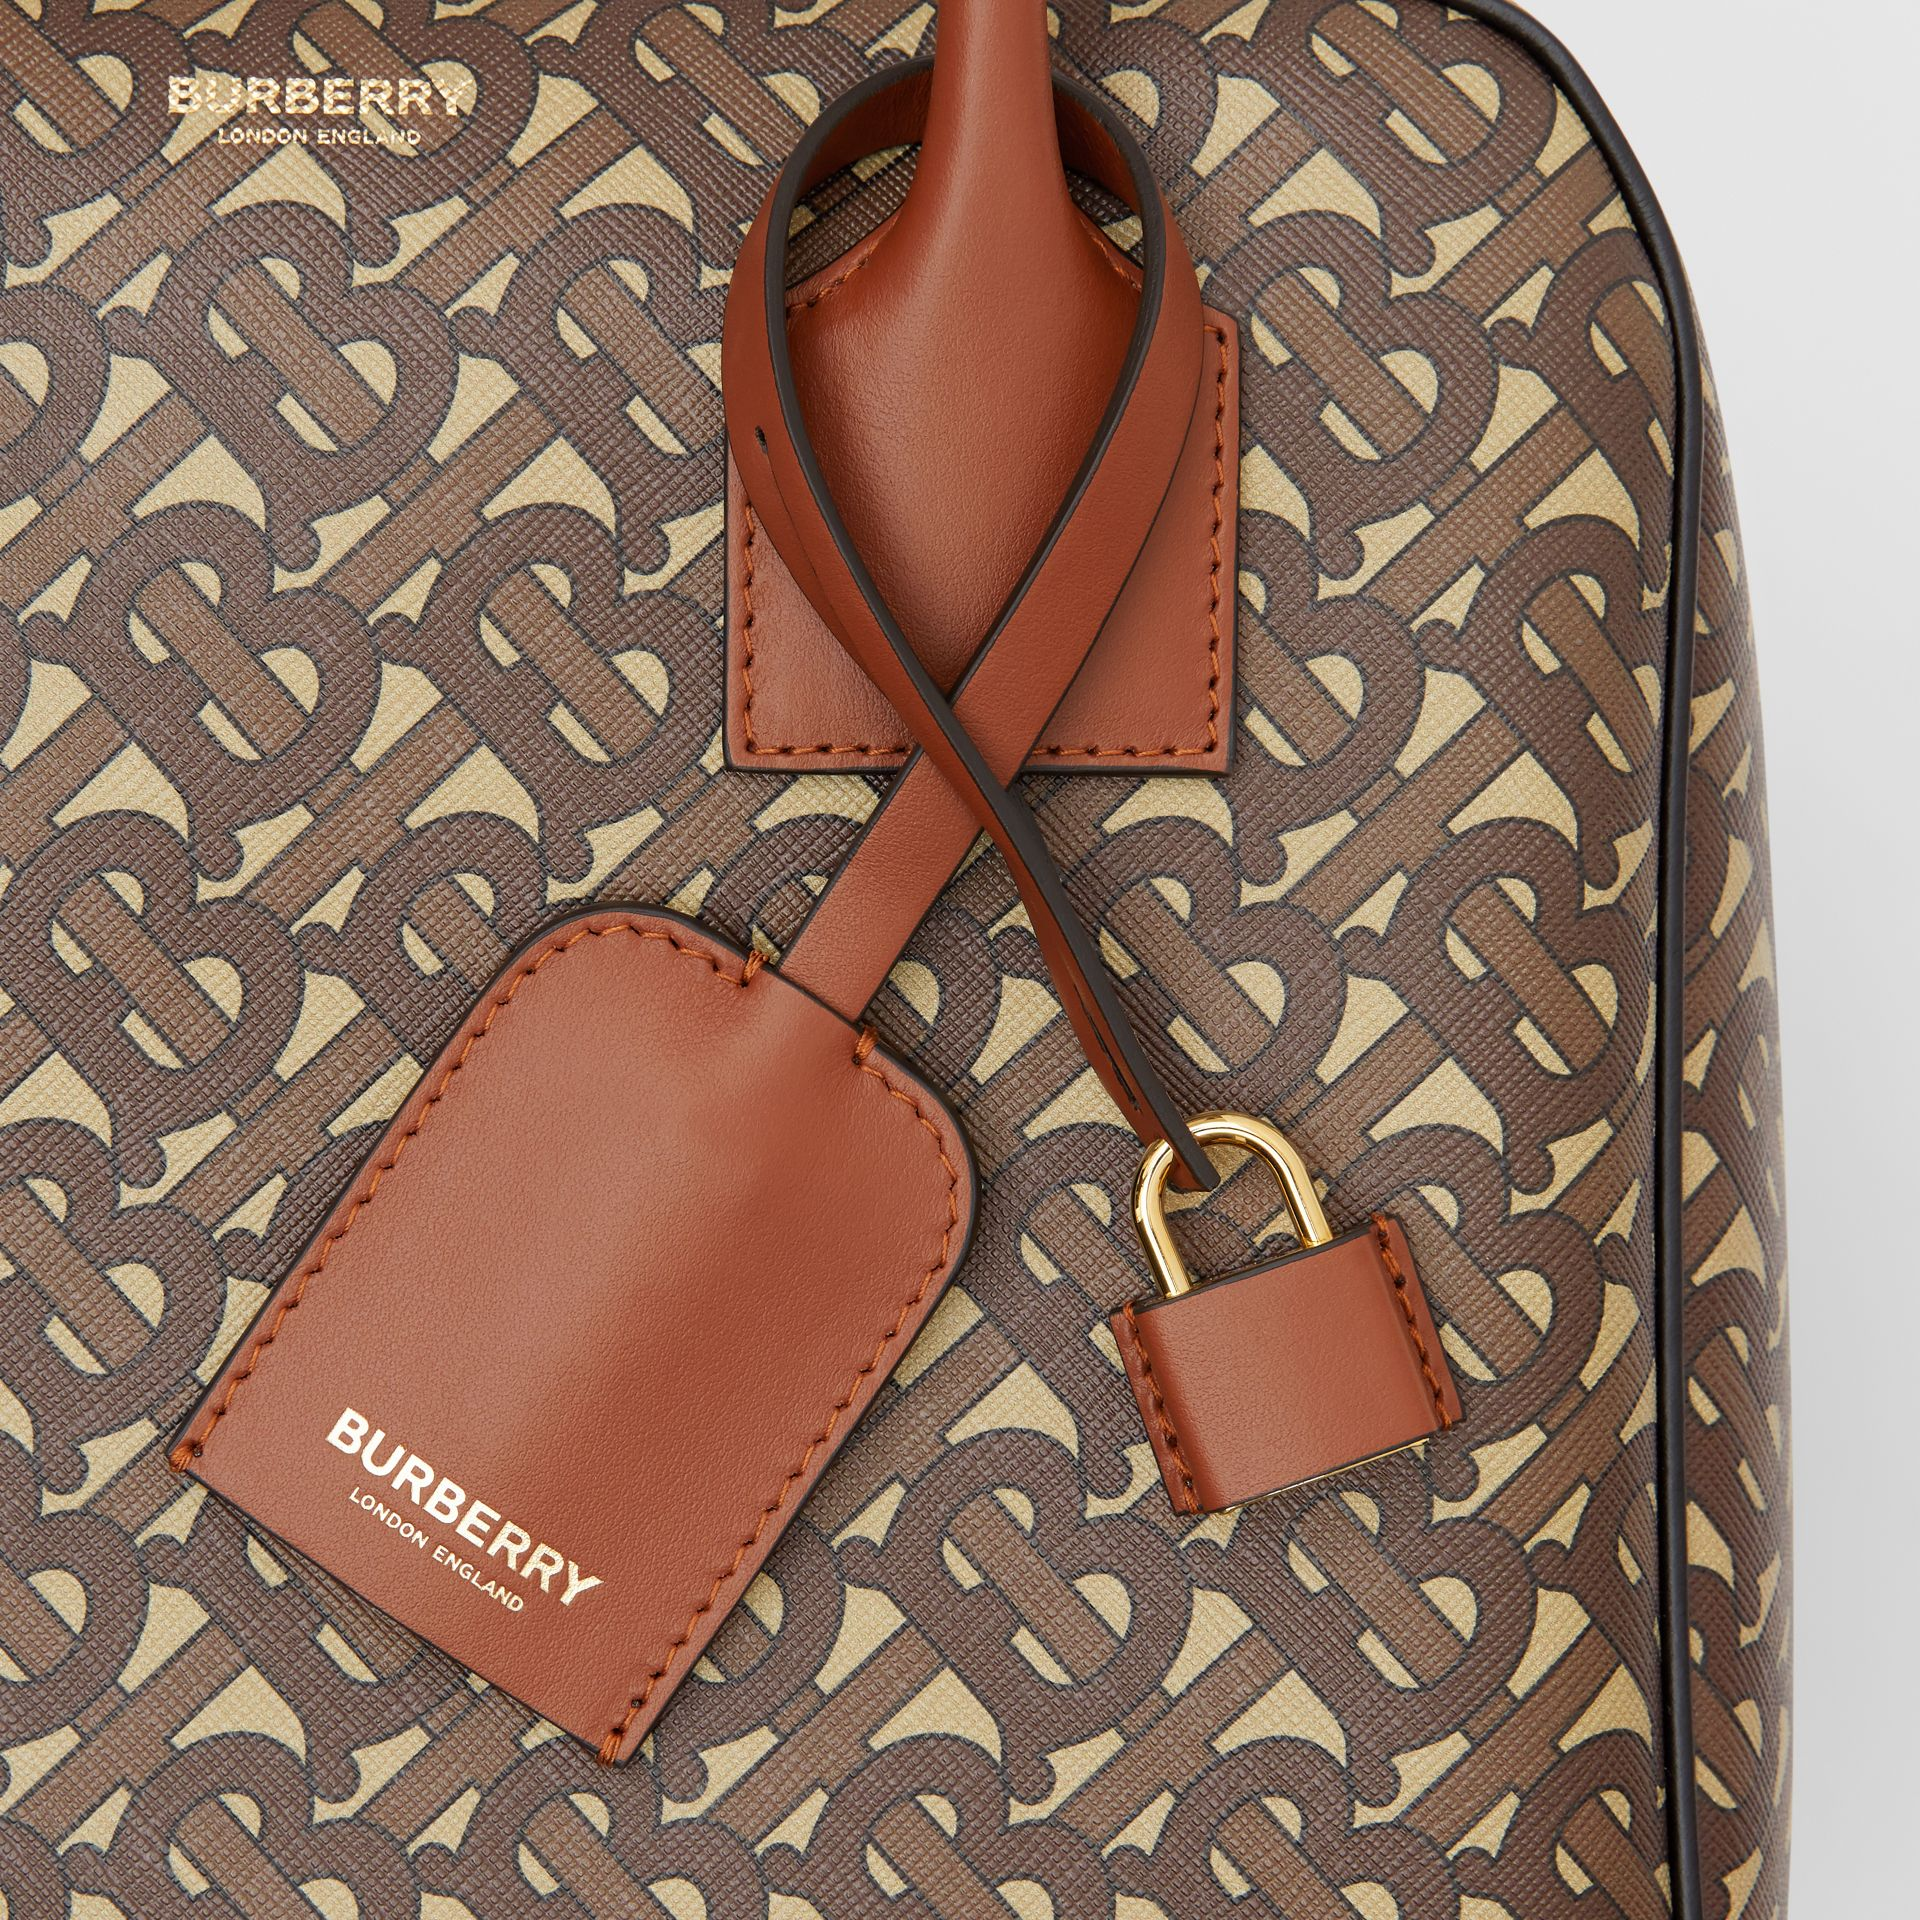 Borsa Cube media in e-canvas con stampa monogramma a righe (Marrone Redini) - Donna | Burberry - immagine della galleria 1